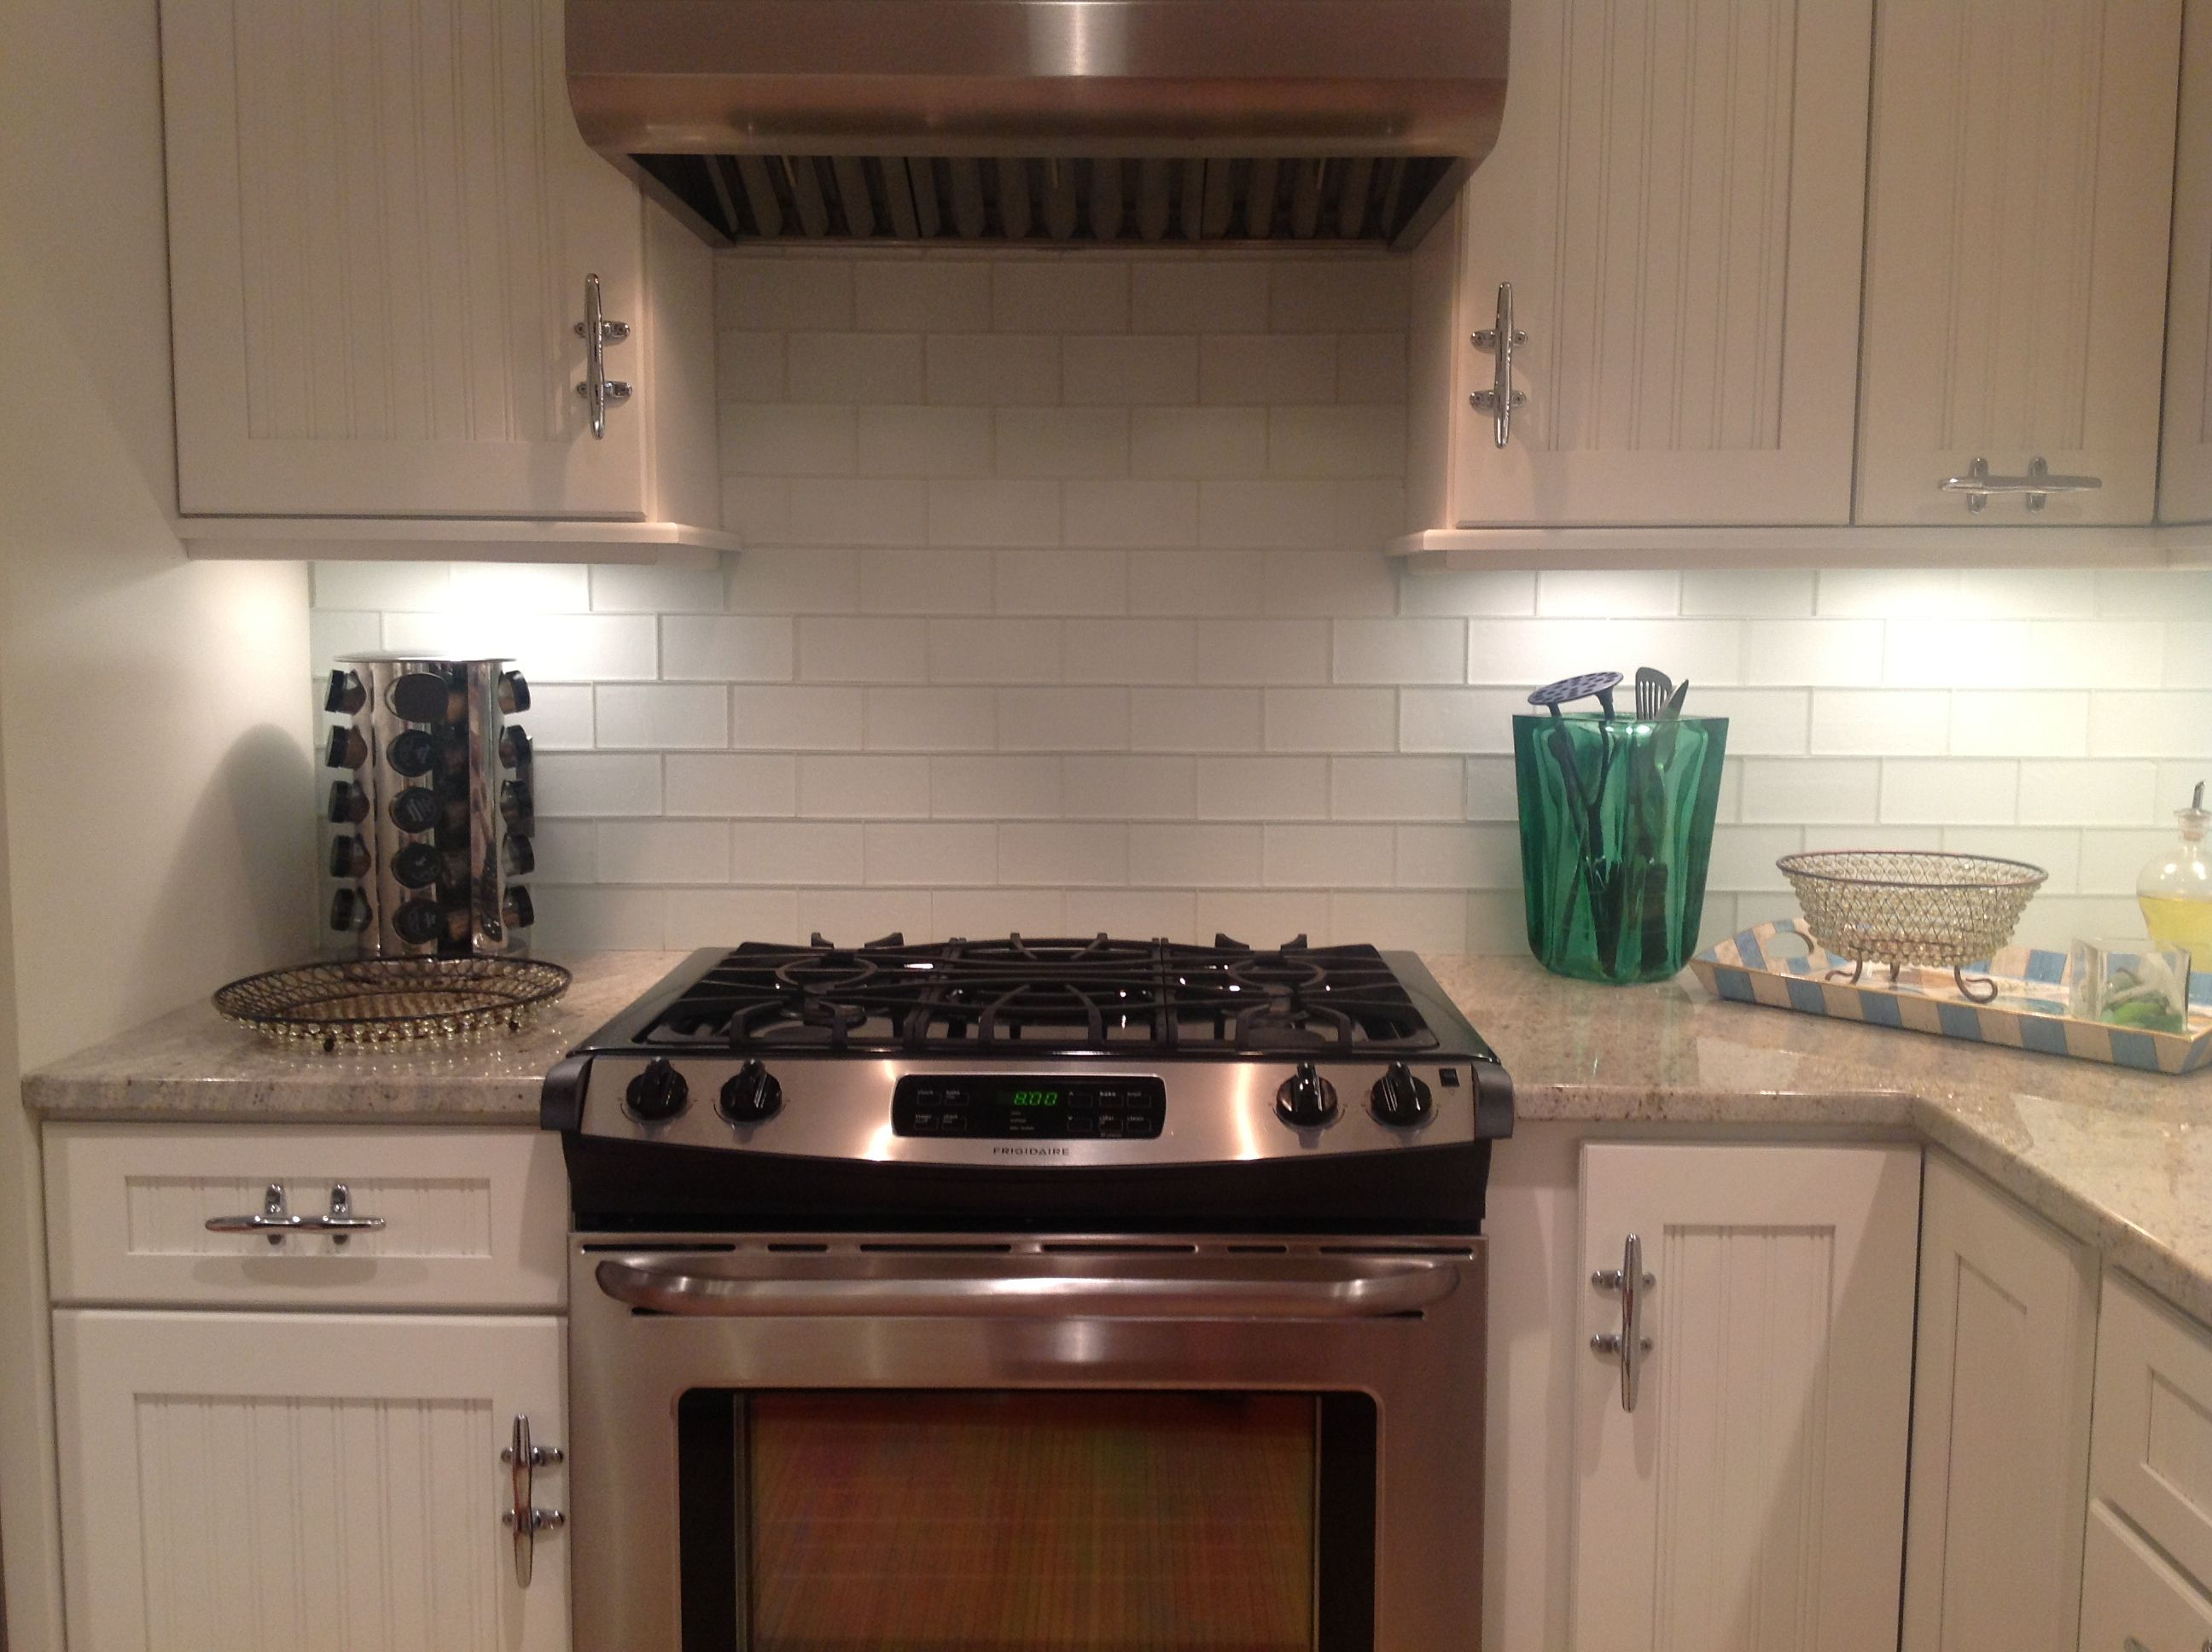 Kitchen Back Splash Frosted White Glass Subway Tile Kitchen Backsplash White